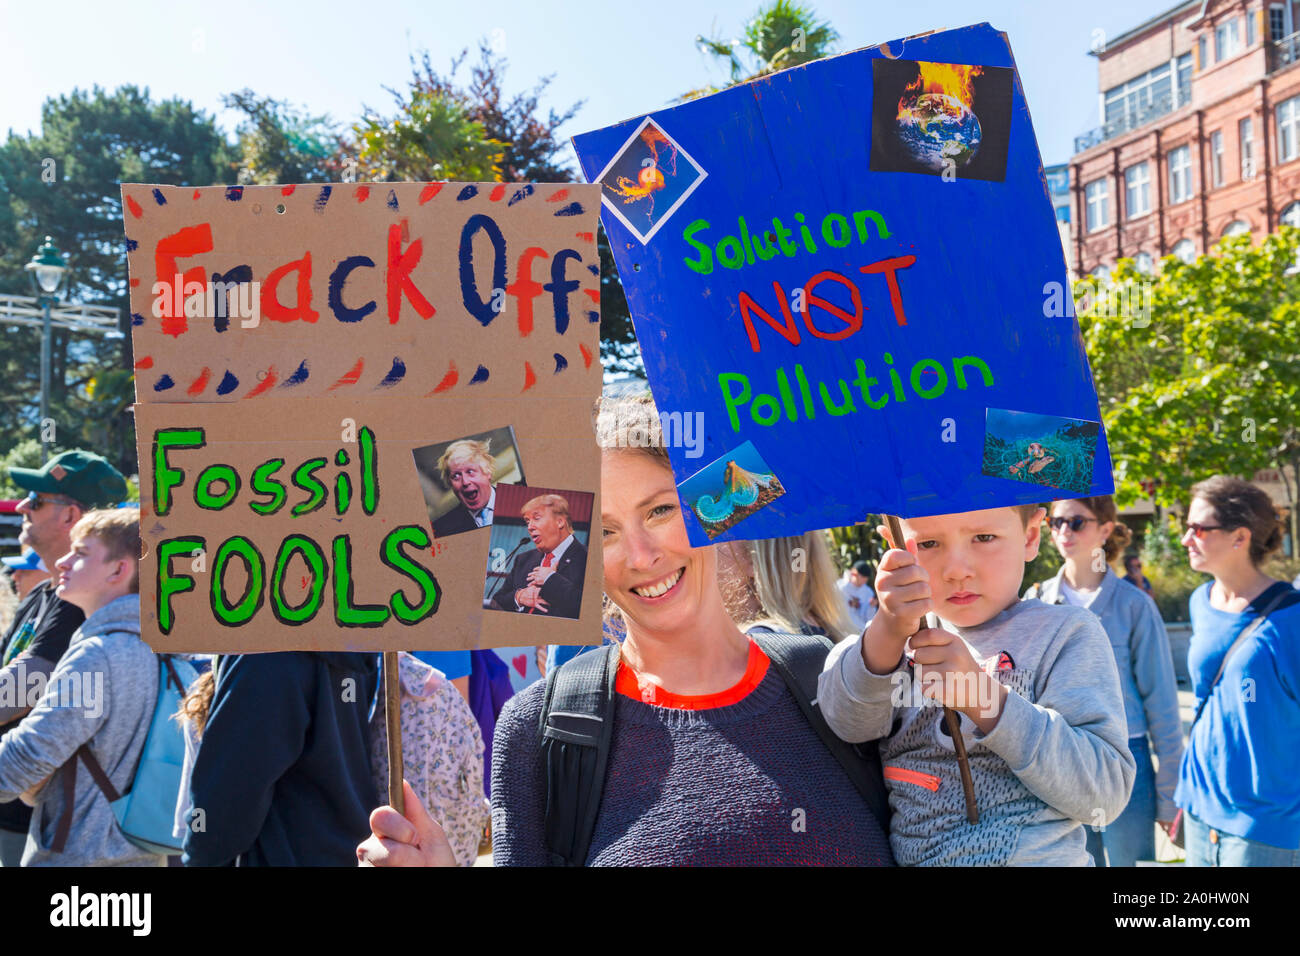 Bournemouth, Dorset UK. 20th September 2019. Protesters, young and old, gather in Bournemouth Square on a hot sunny day to protest against climate change and demand action against climate breakdown from government and businesses to do more. BCP (Bournemouth, Christchurch, Poole) Council have reportedly been threatened with legal action and could be taken to court until they produce proper timely climate change plans. Woman and boy holding placards - frack off fossil fools & solution not pollution. Credit: Carolyn Jenkins/Alamy Live News Stock Photo